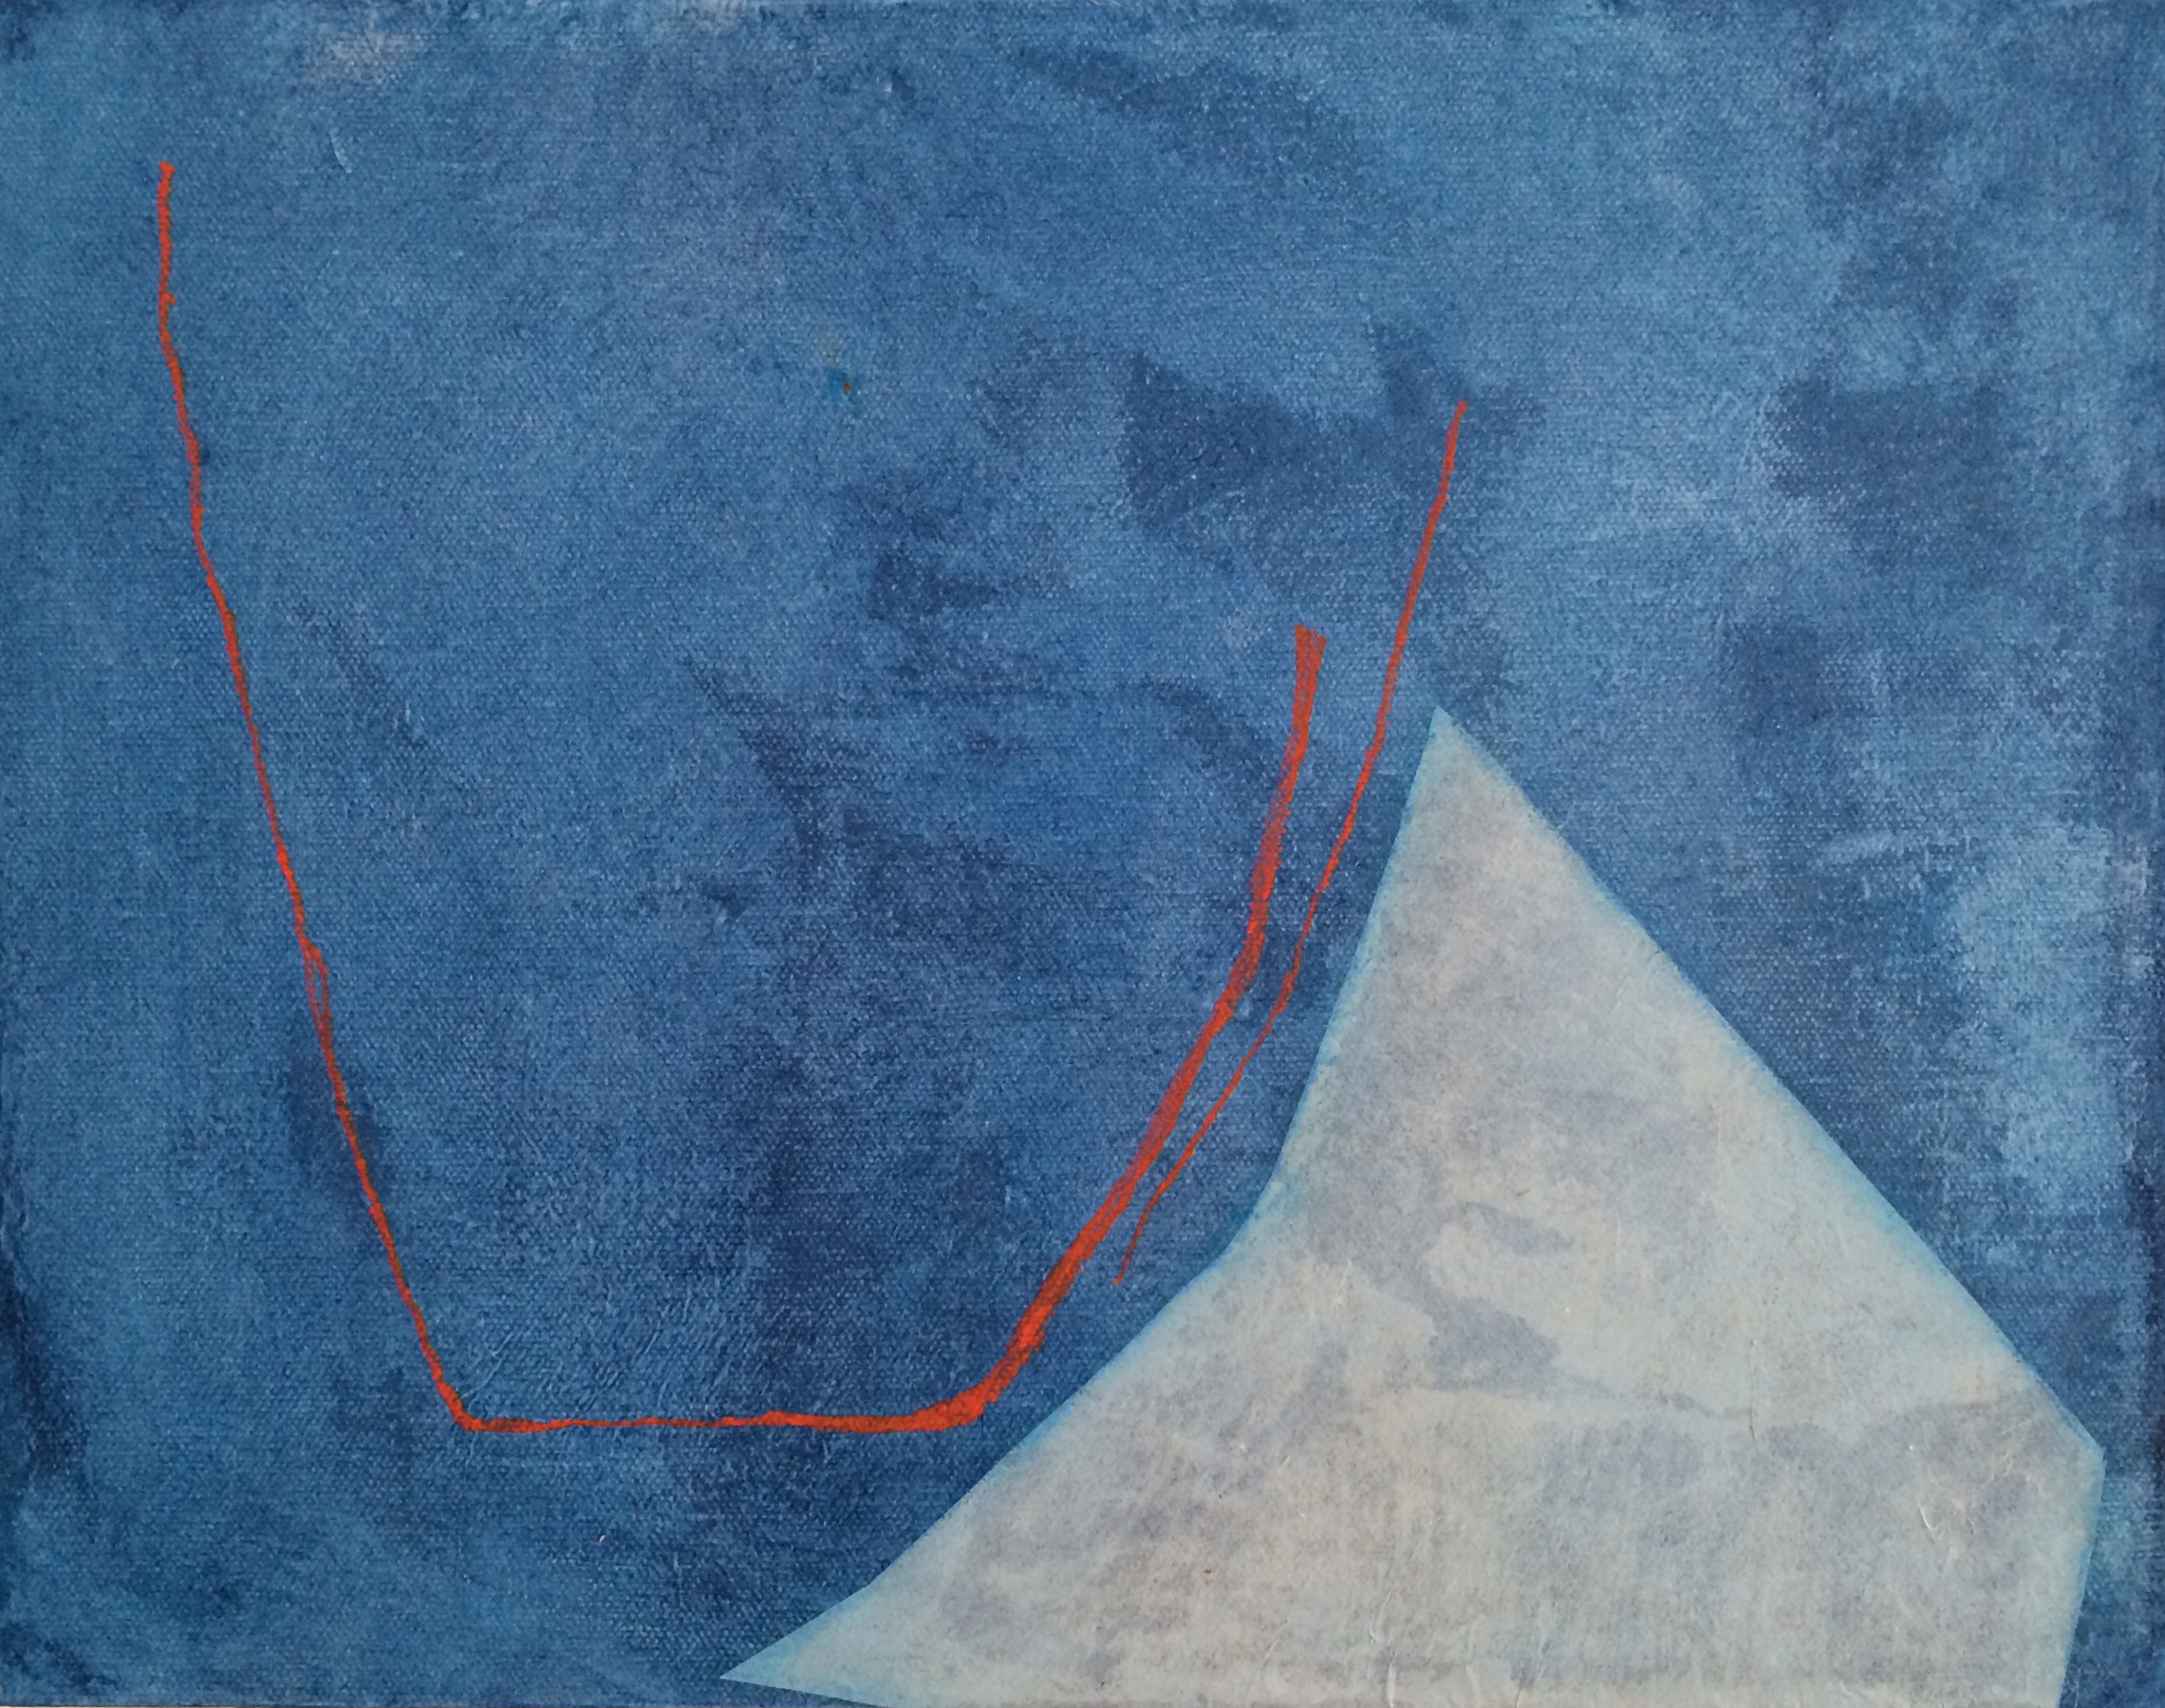 Pale Form on Blue with Red Lines, 2014, mulberry paper, acrylic, pencil on canvas, 11 x 14 in, $650